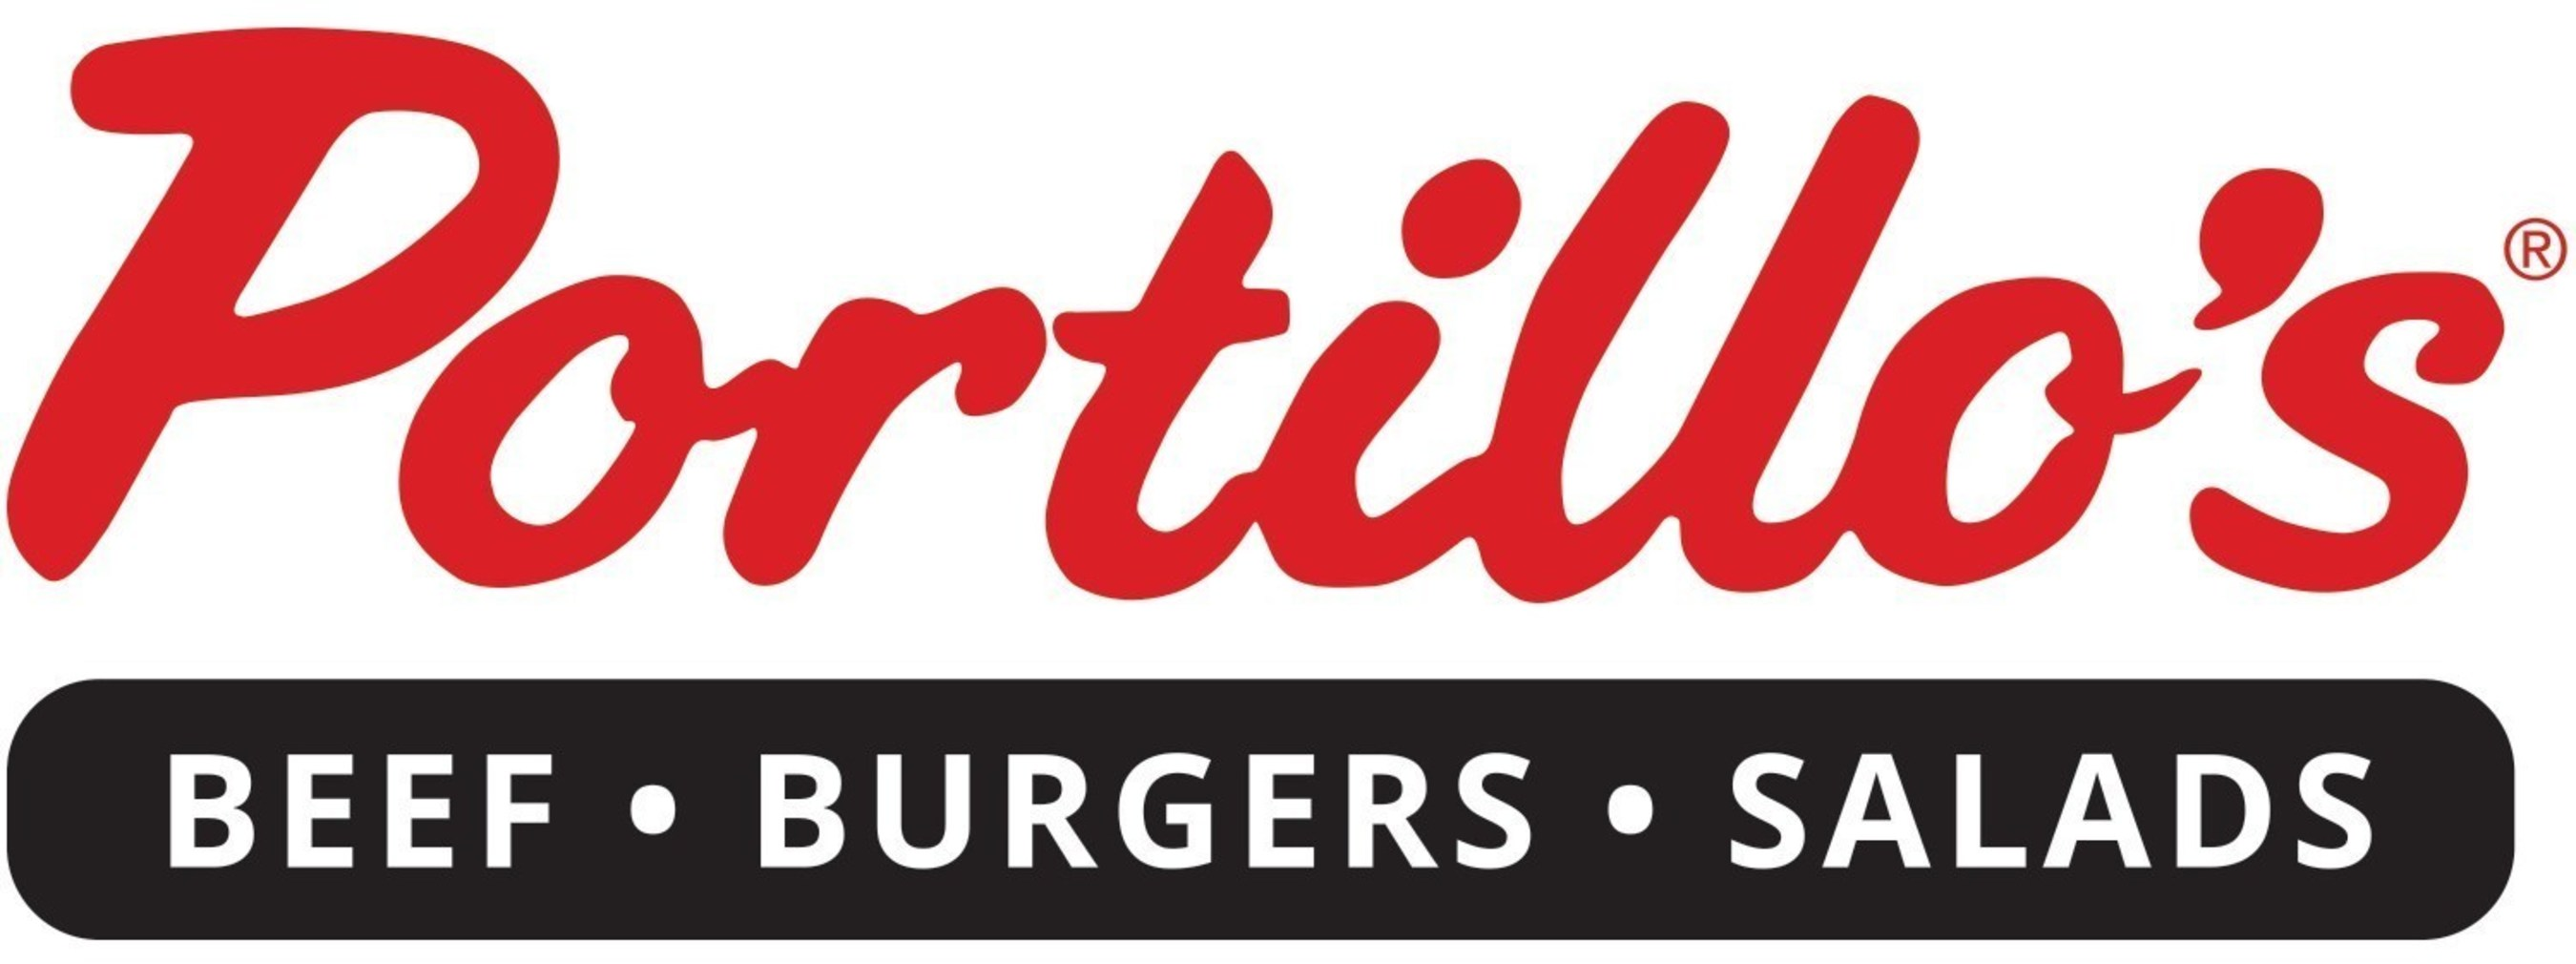 Portillo's Restaurant Names New CEO